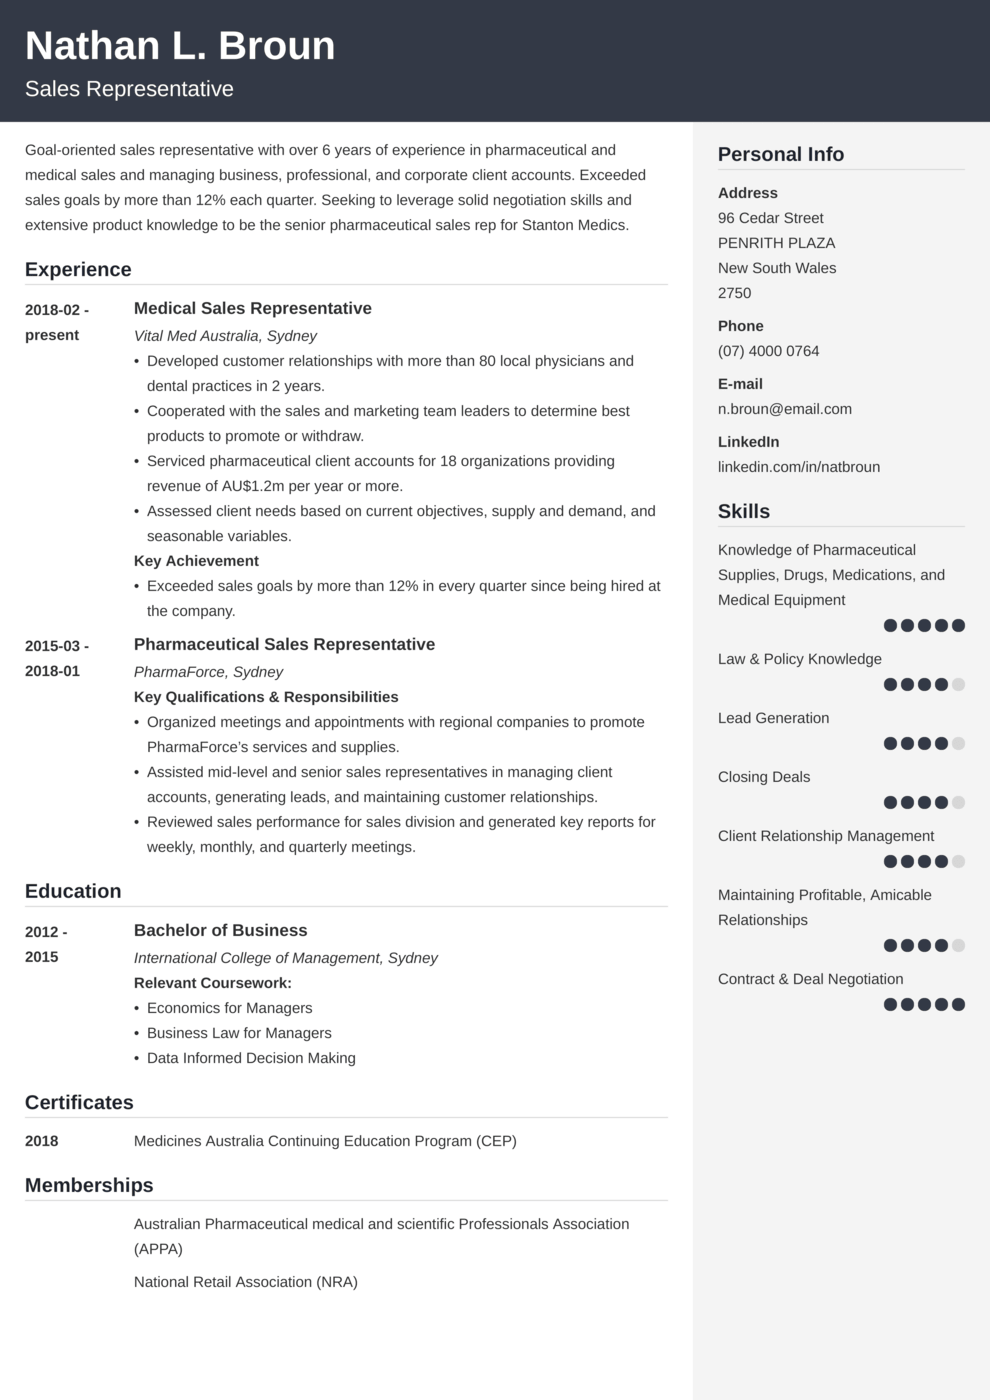 Zety's Cubic CV Template